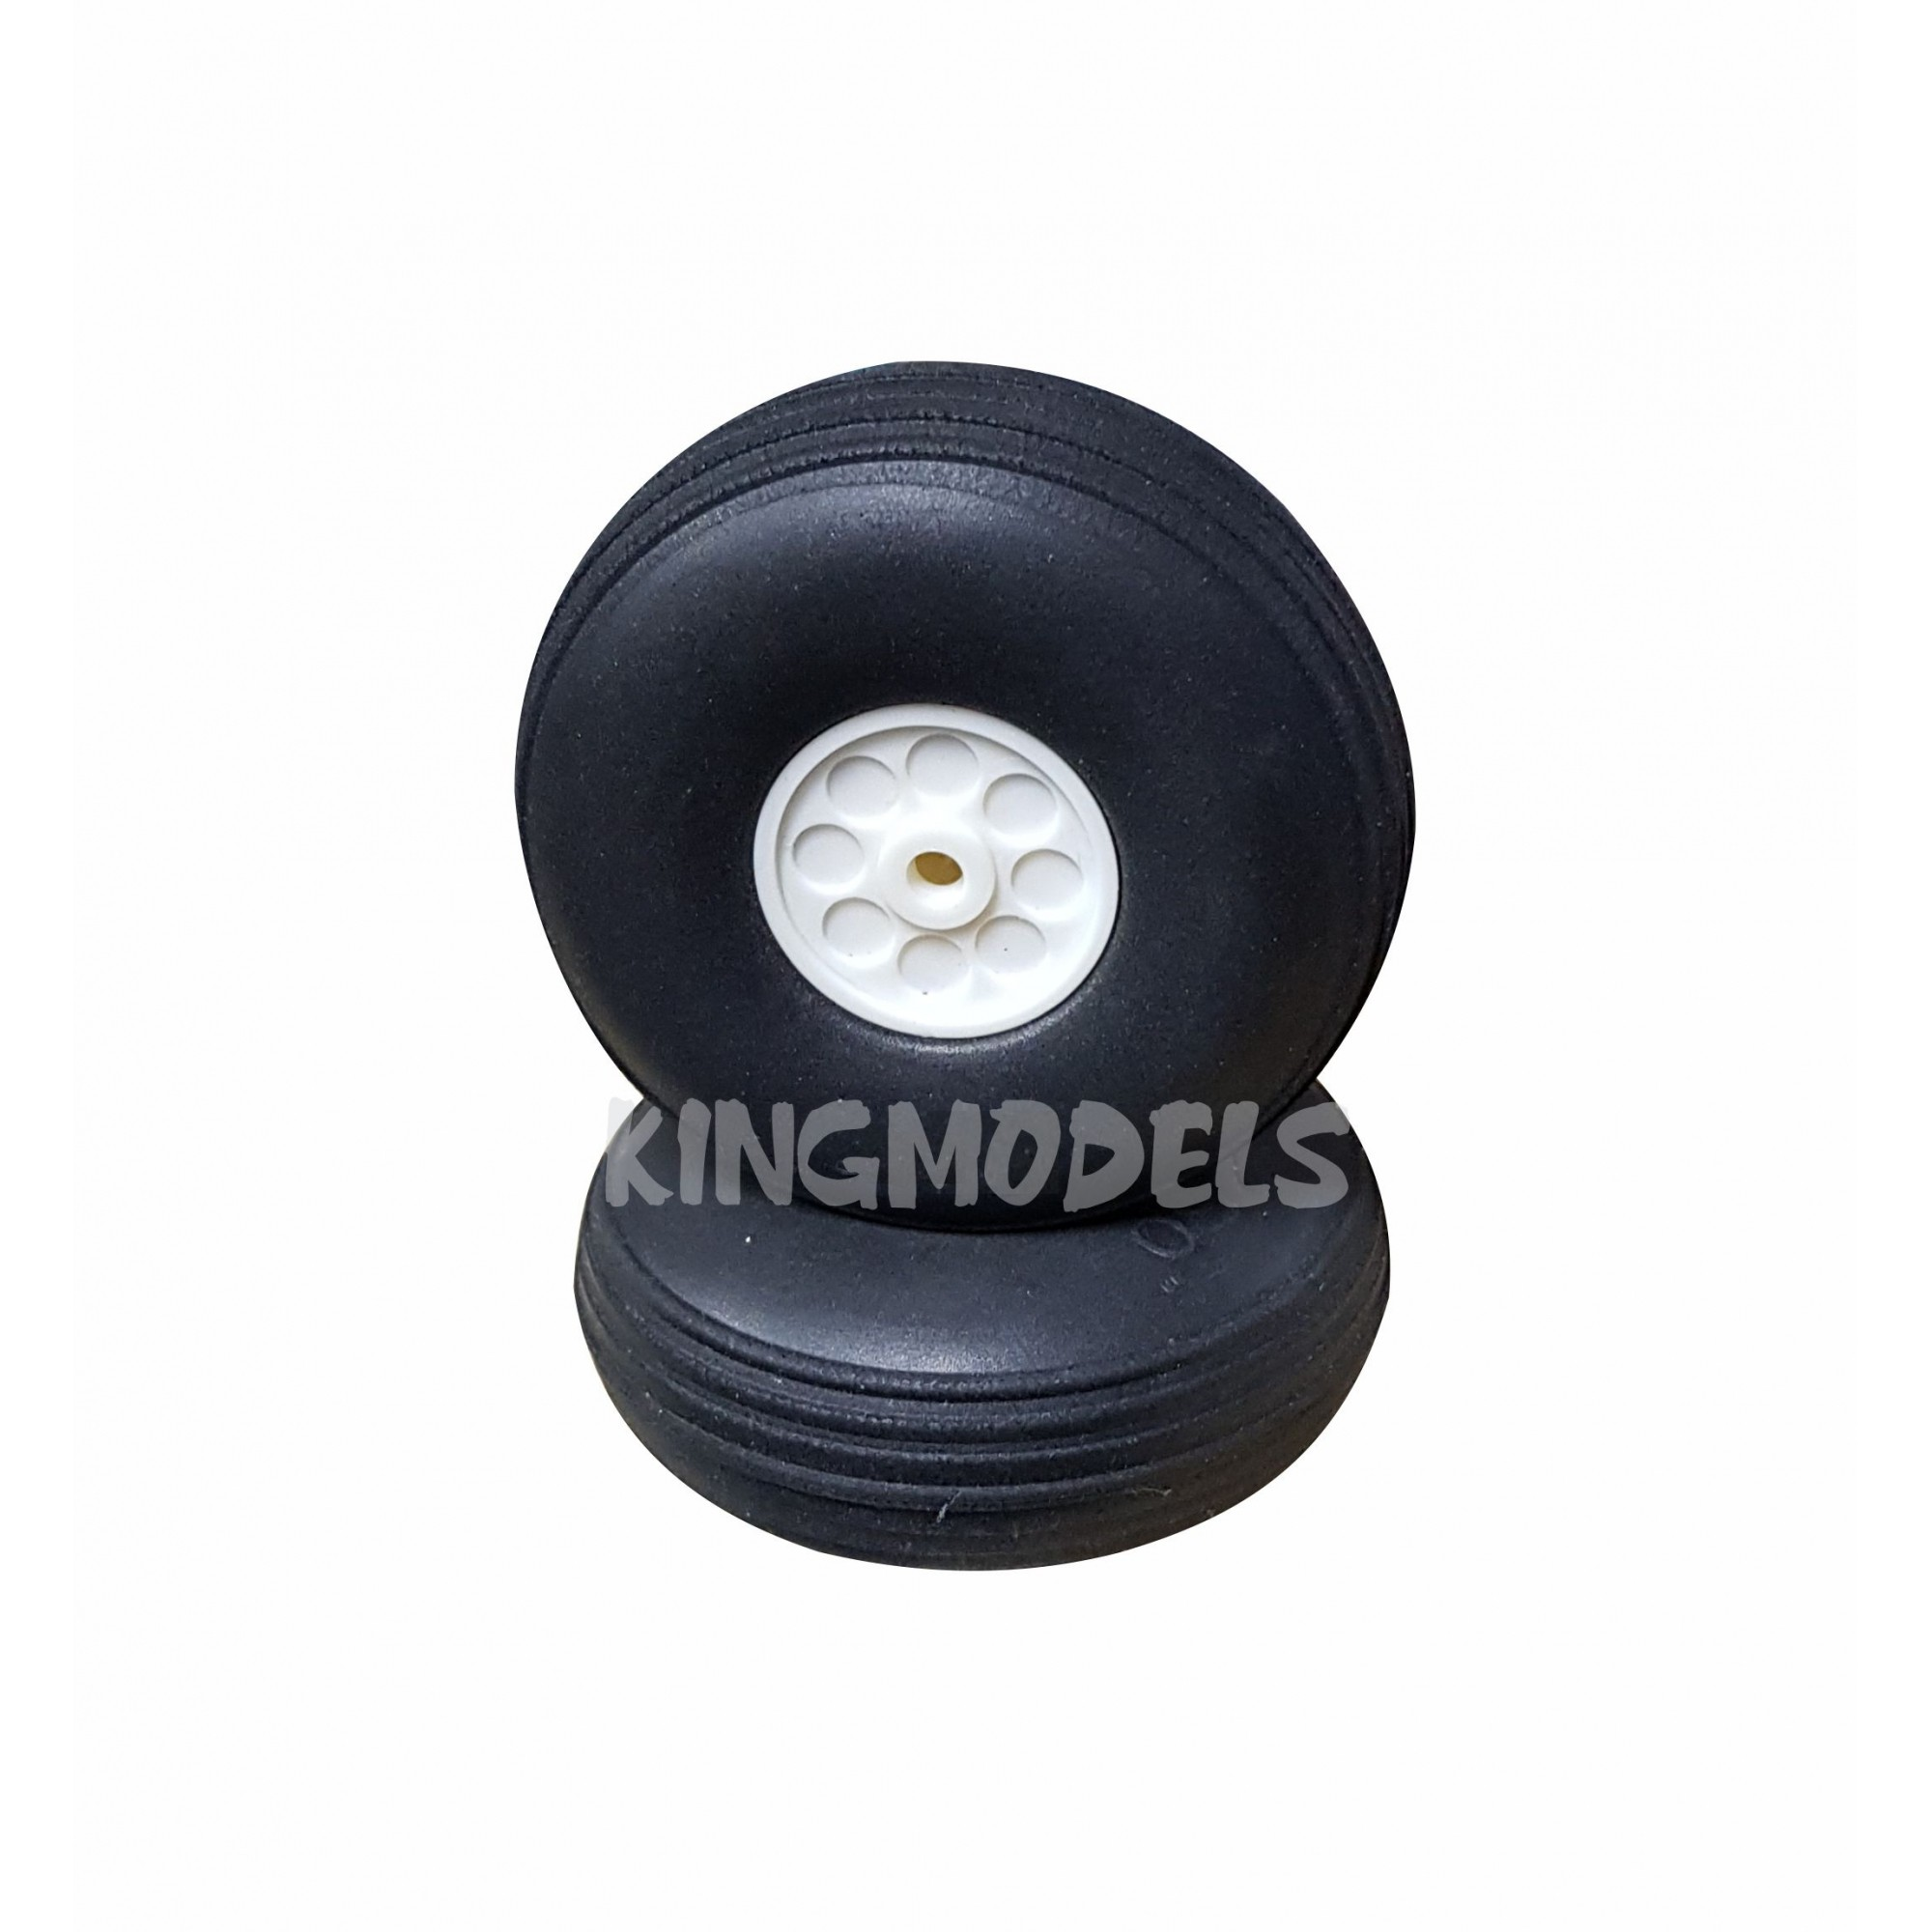 Roda De Borracha Extra-leve E Cubo Nylon- 63mm - (2pçs)   - King Models